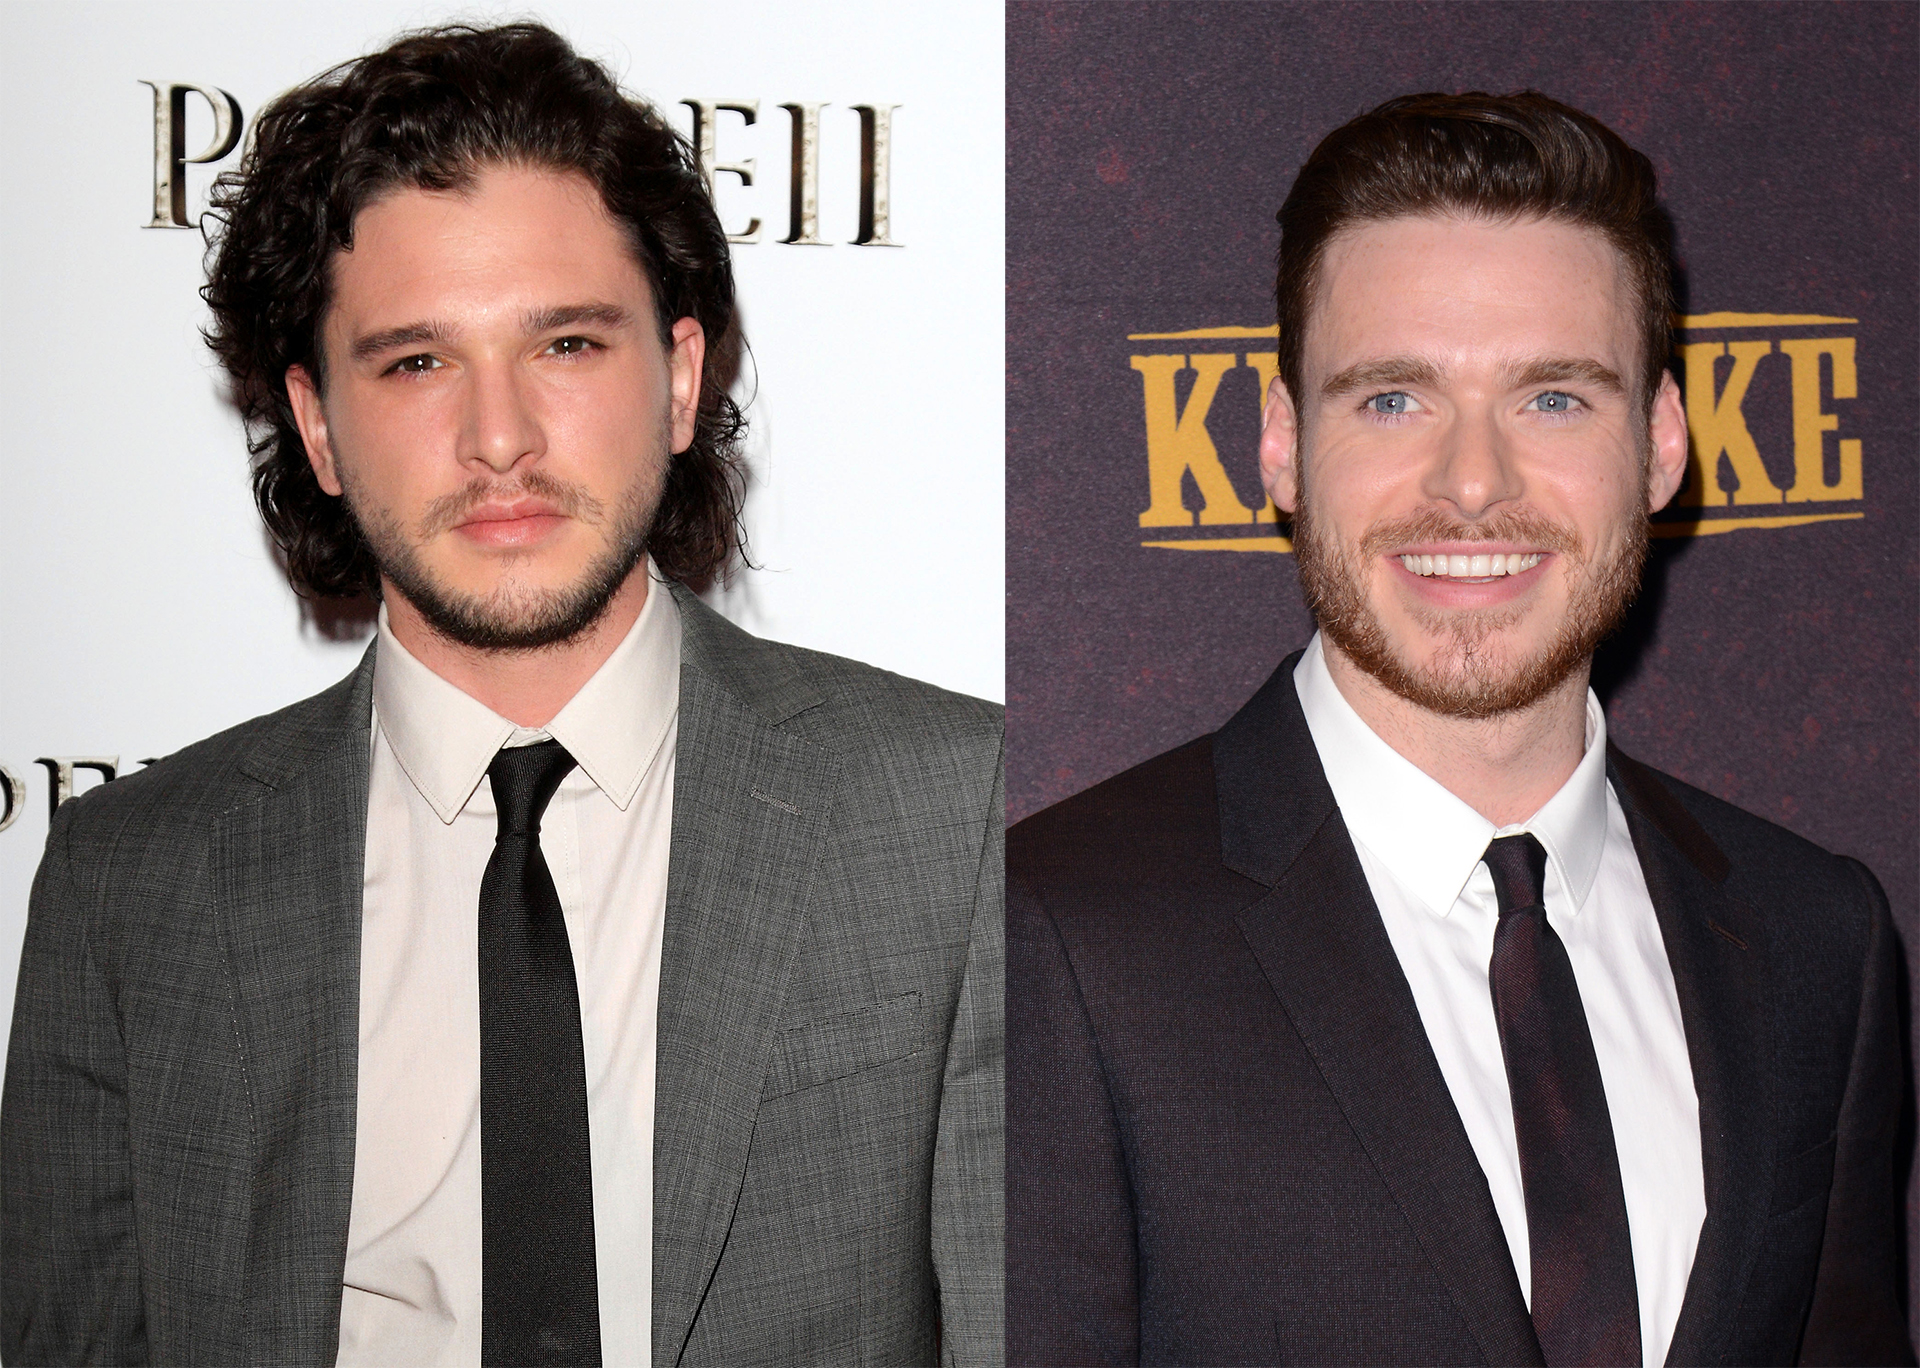 Who is the favorite sibling, Robb Stark or Jon Snow